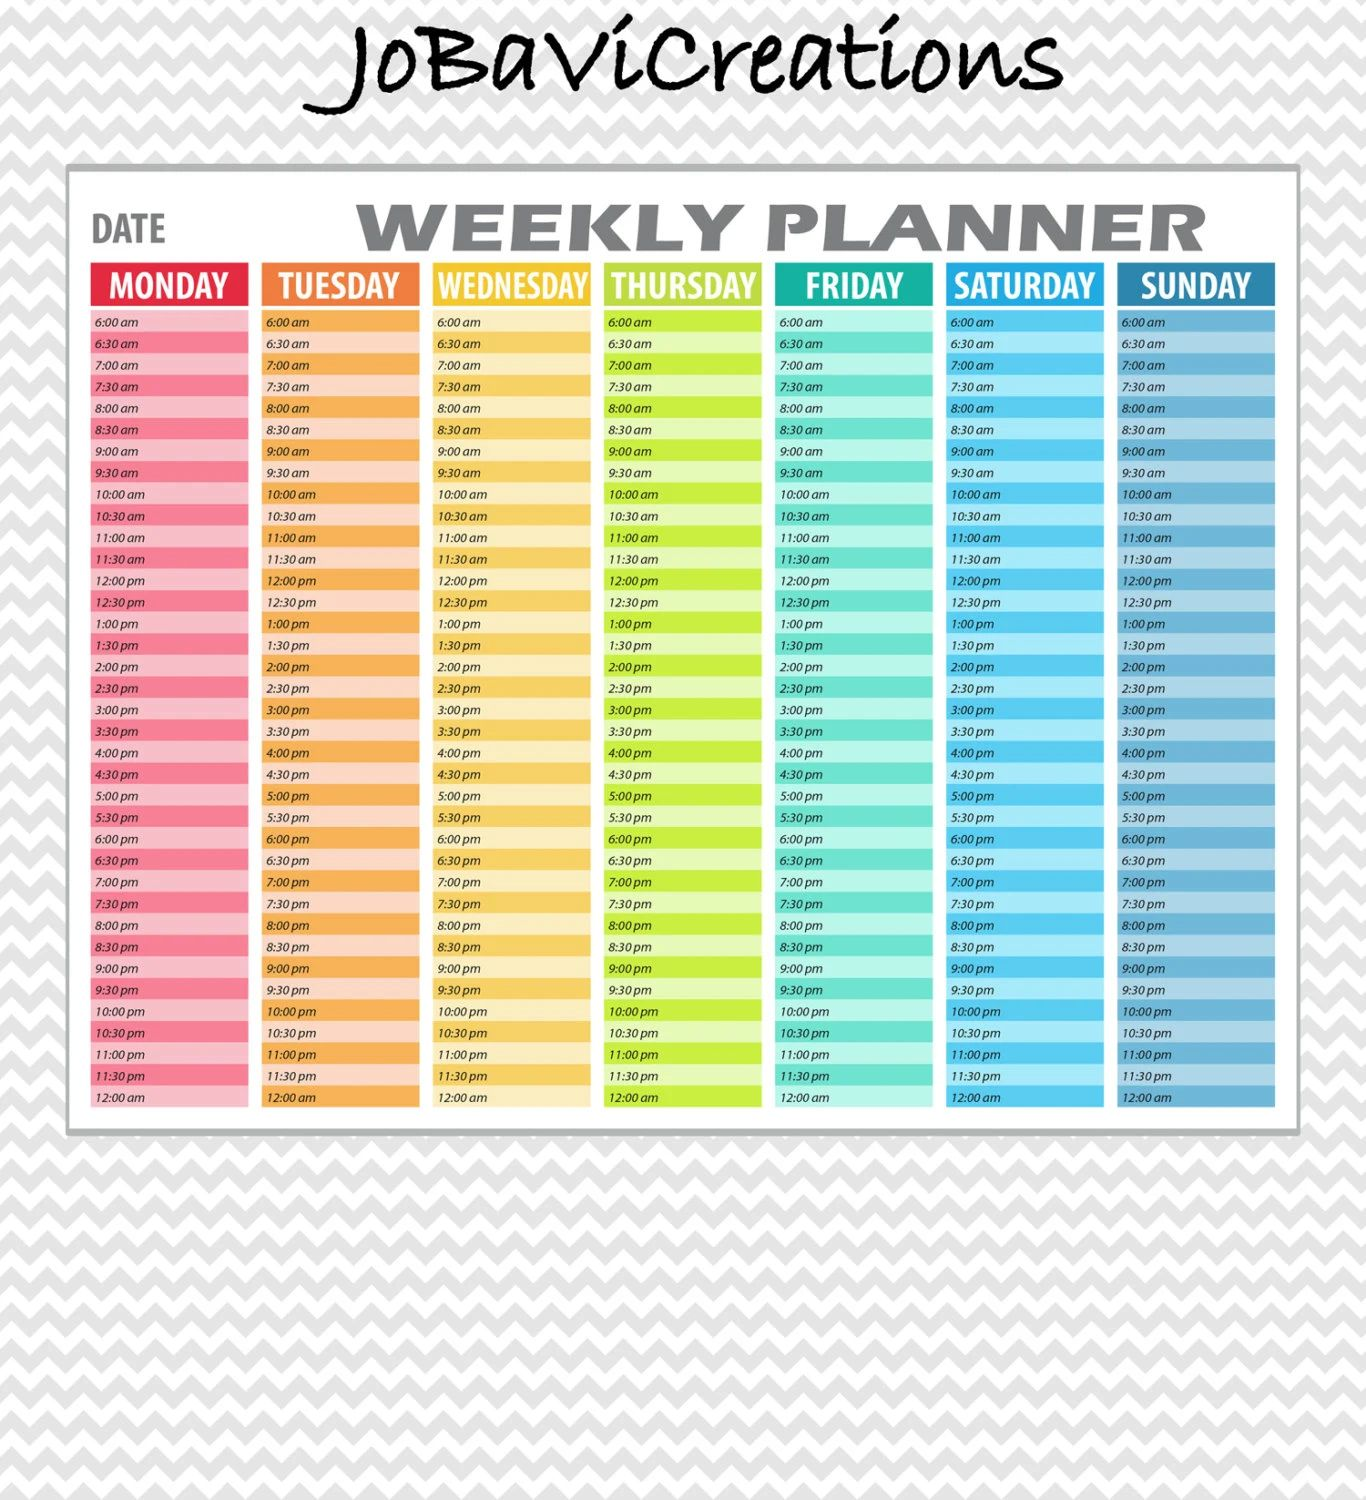 weekly schedule organizer